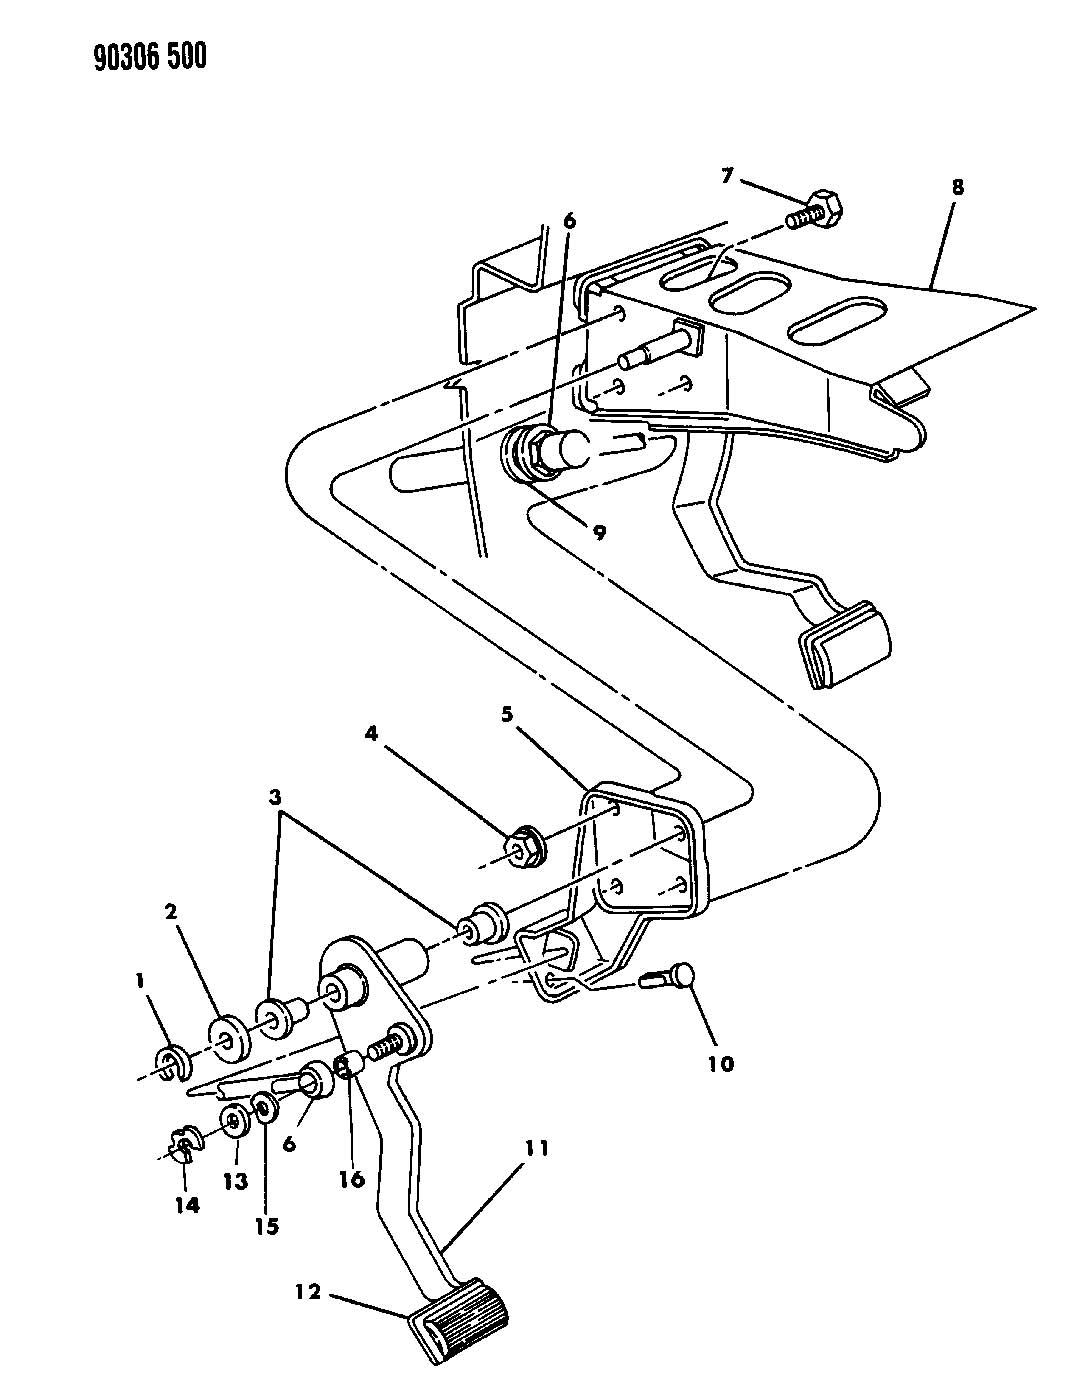 Neutral safety switch honda accord together with 92 ford tempo engine diagram also 93 toyota pickup